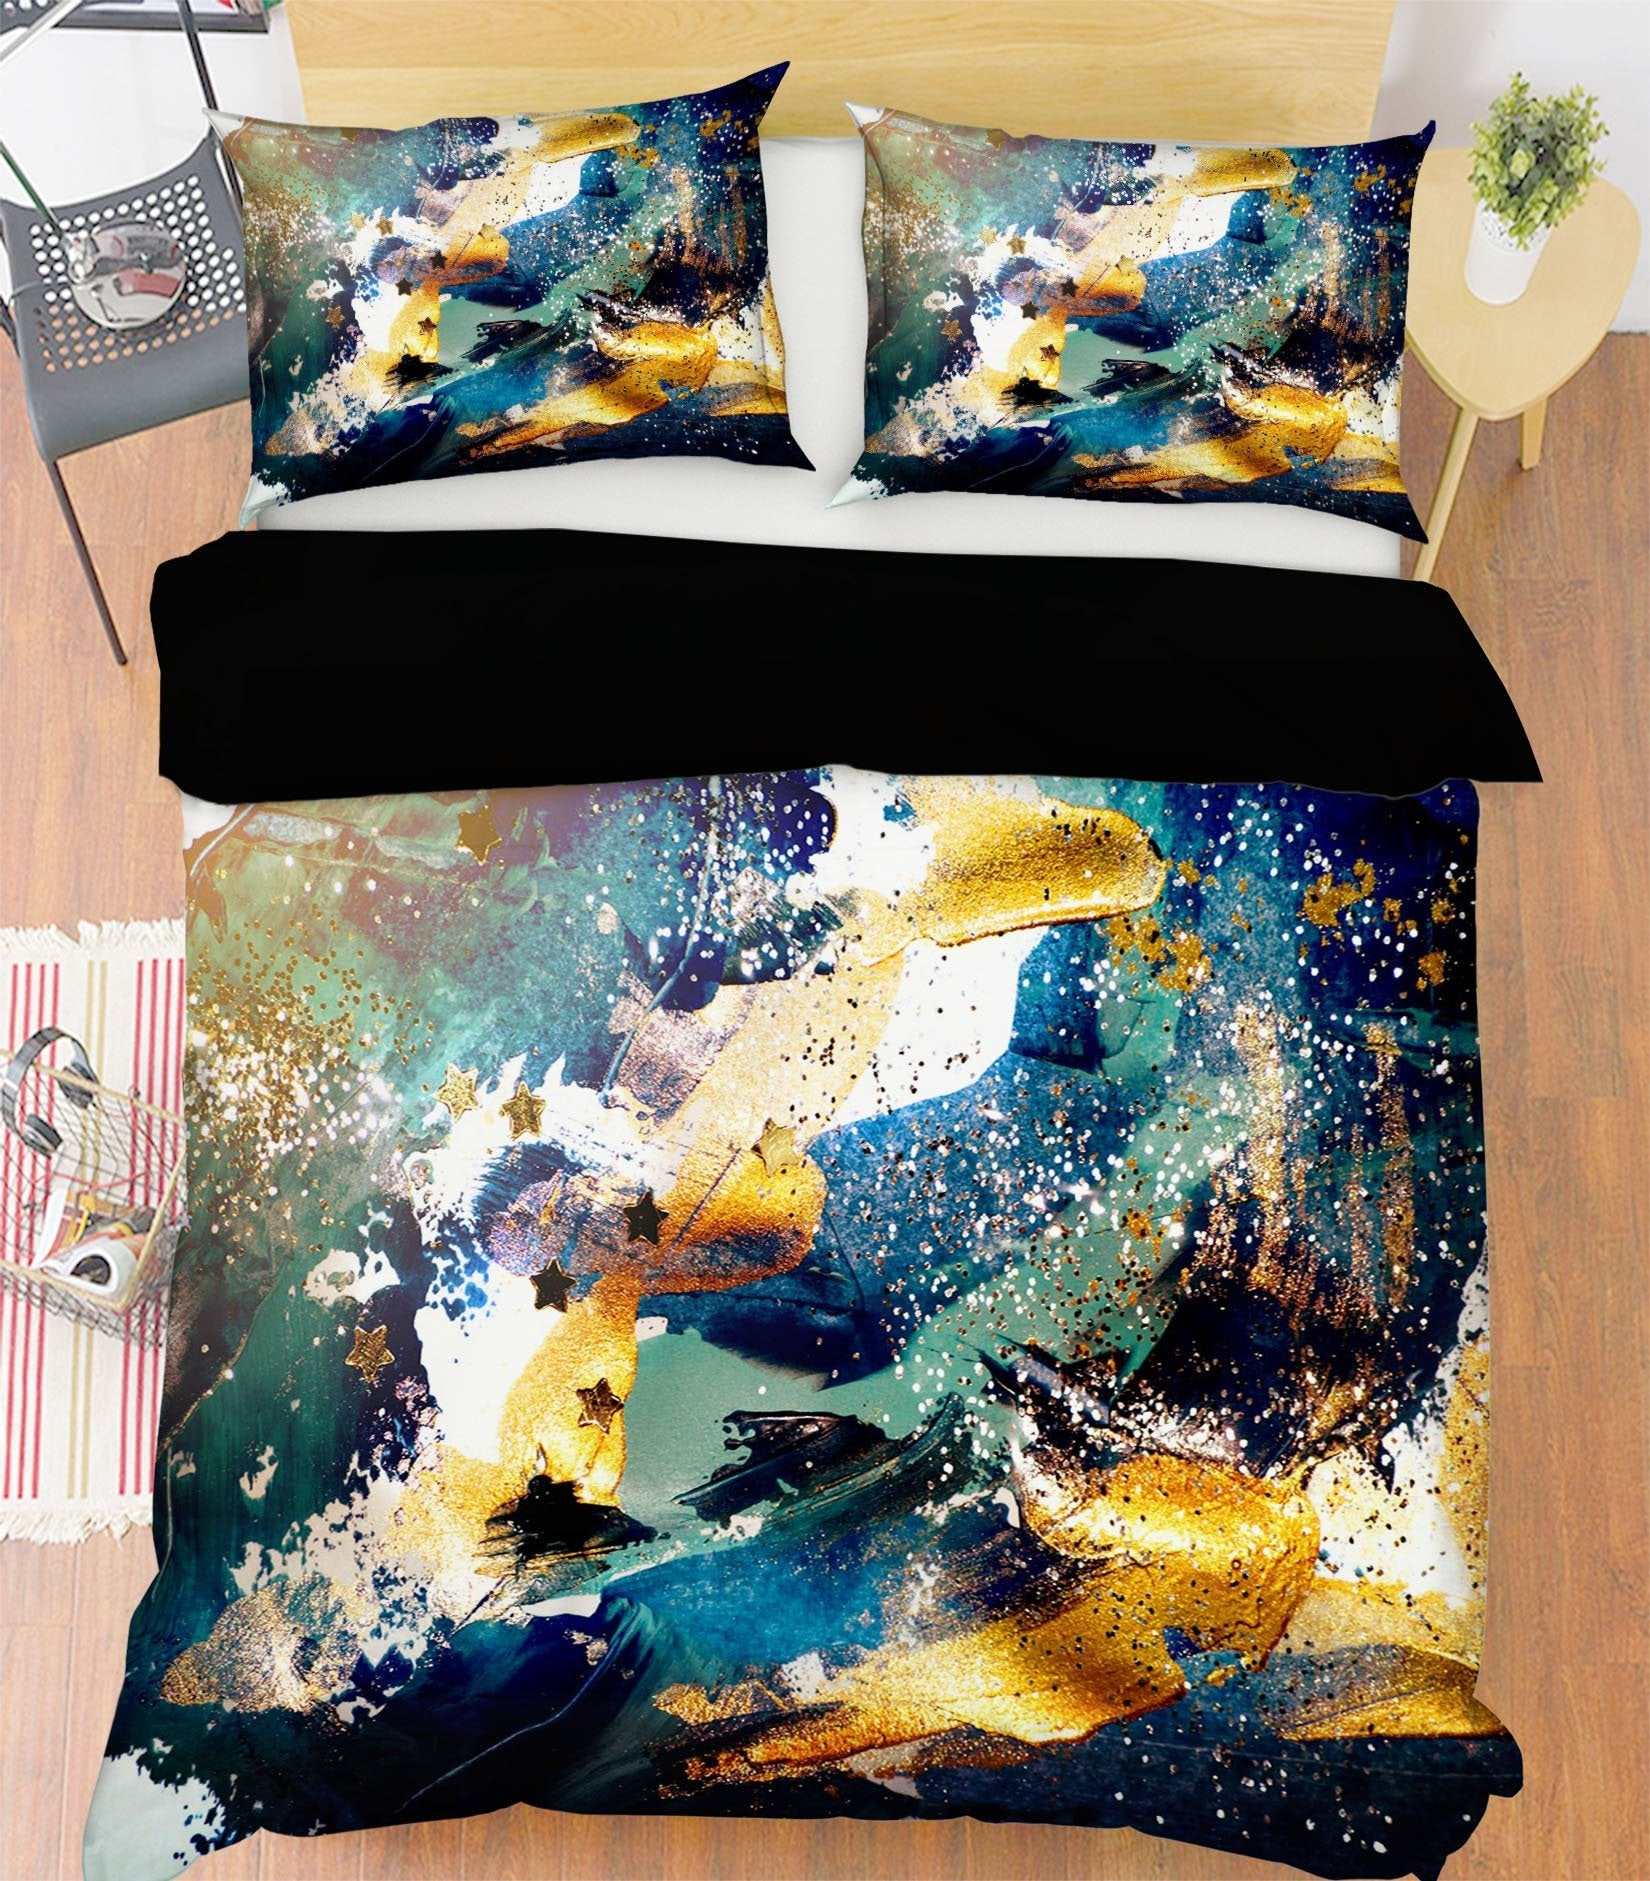 3D Gold Water Abstract 058 Bed Pillowcases Quilt Wallpaper AJ Wallpaper